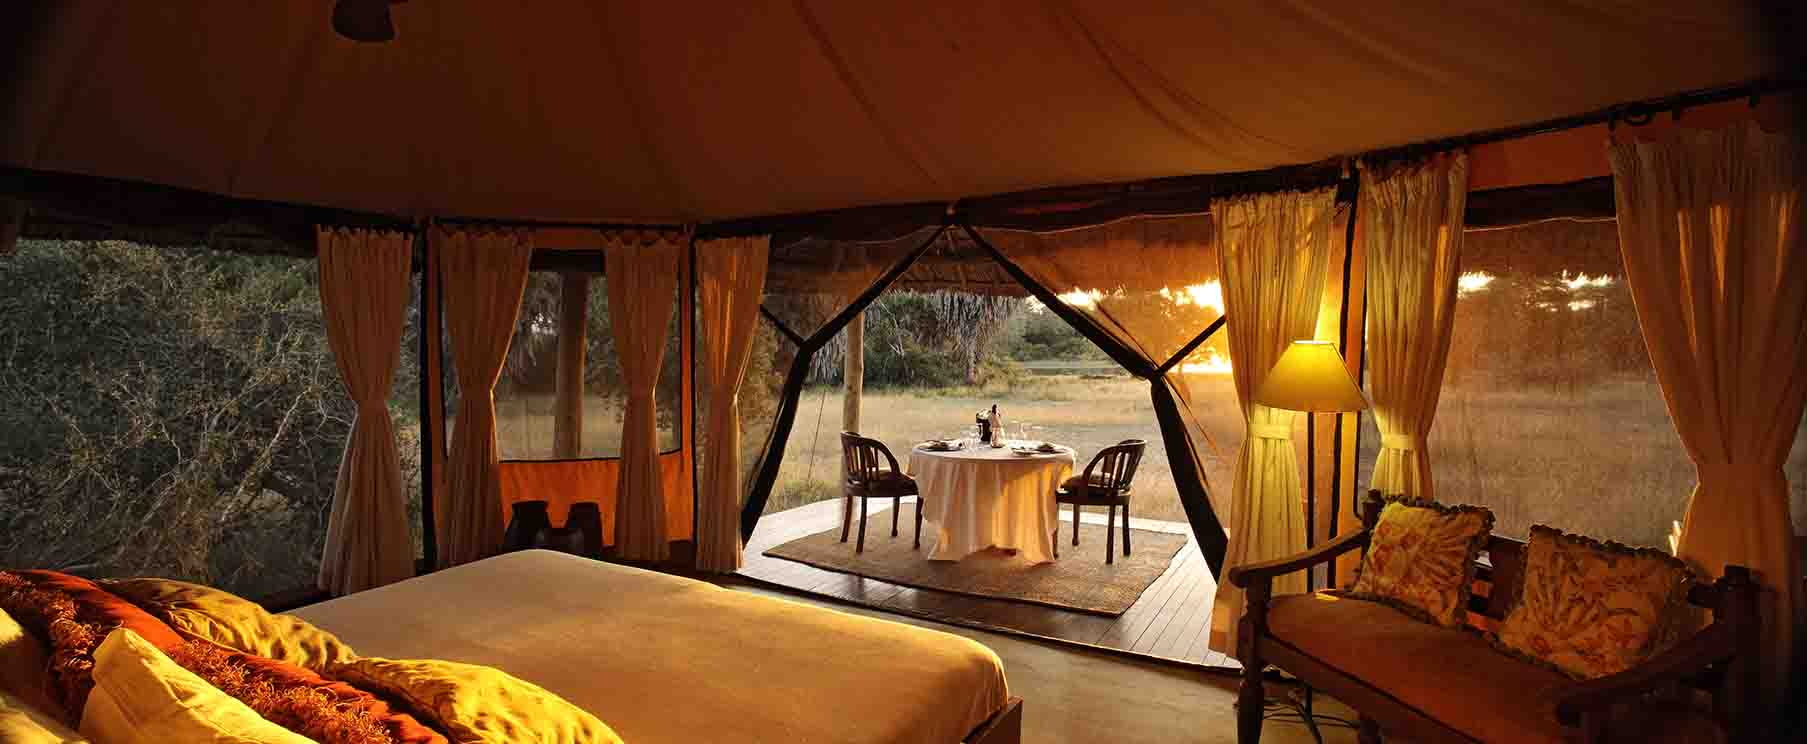 Glamping in Siwandu Tents